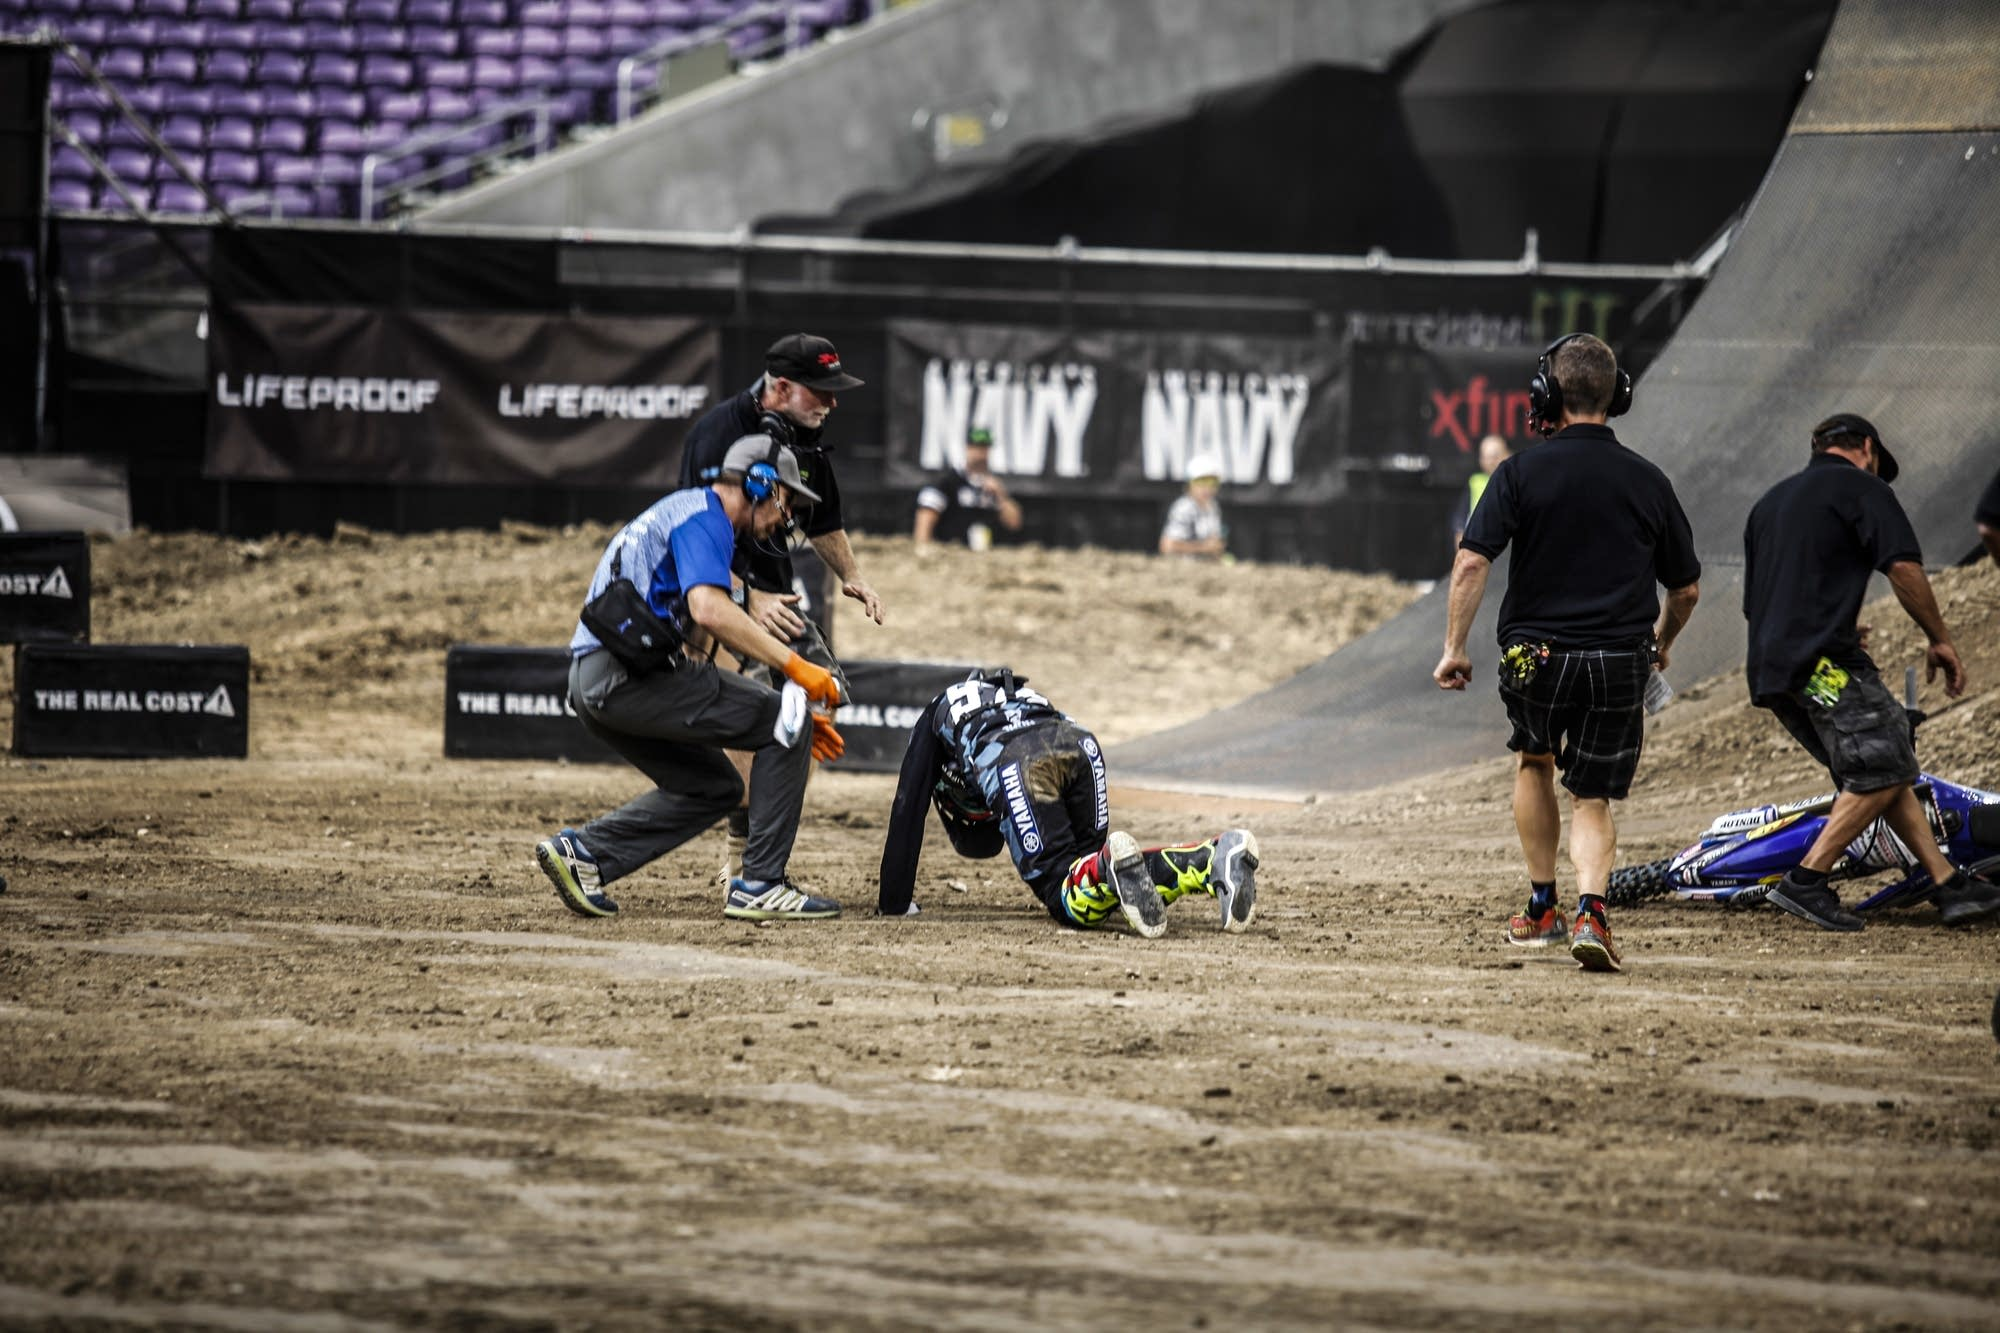 Jarryd McNeil falls from his bike as he lands from his jump.